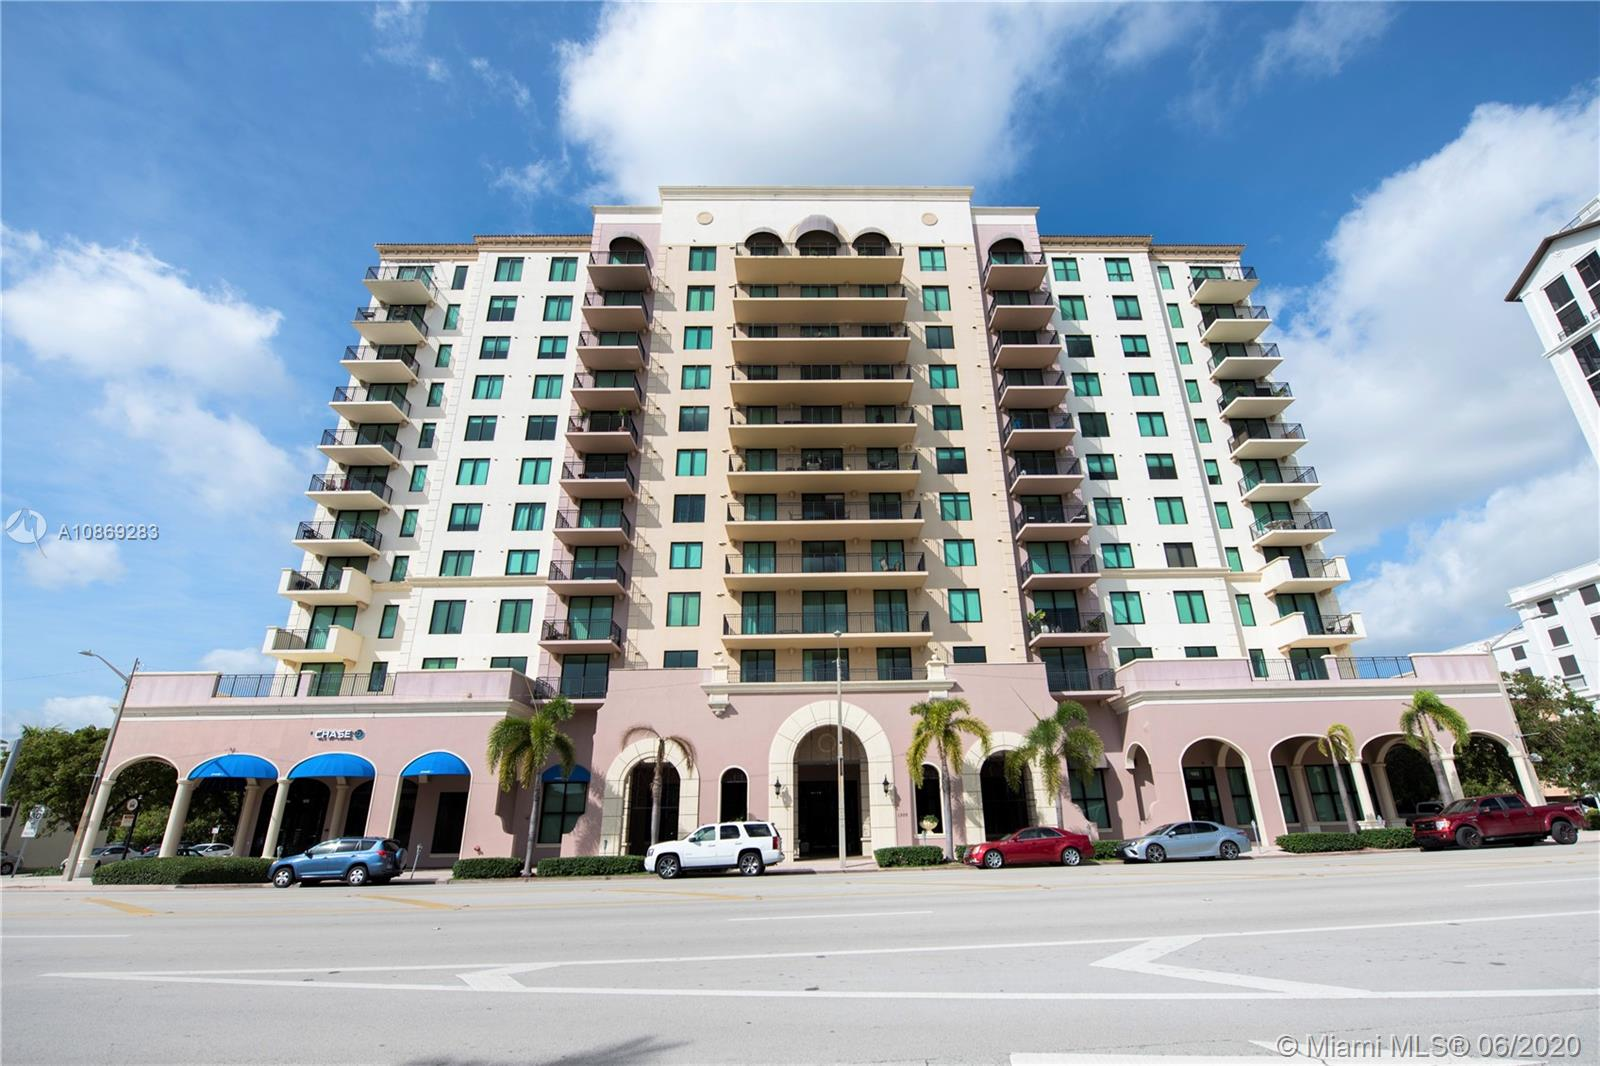 Spacious luxury condo at the heart of Coral Gables.This incredible unit has a huge open balcony with amazing city views.The unit has wood cabinets, stainless stain appliances, impact windows, build in walking closets, a pantry and a convenient split plan. This unit comes with two assigned parking spaces and great amenities including, pool, gym and lounge room. 24 hrs. concierge. Prime location; close to airport and major expressways, walking distance to Miracle Mile, restaurants, shops and much more. A must see!